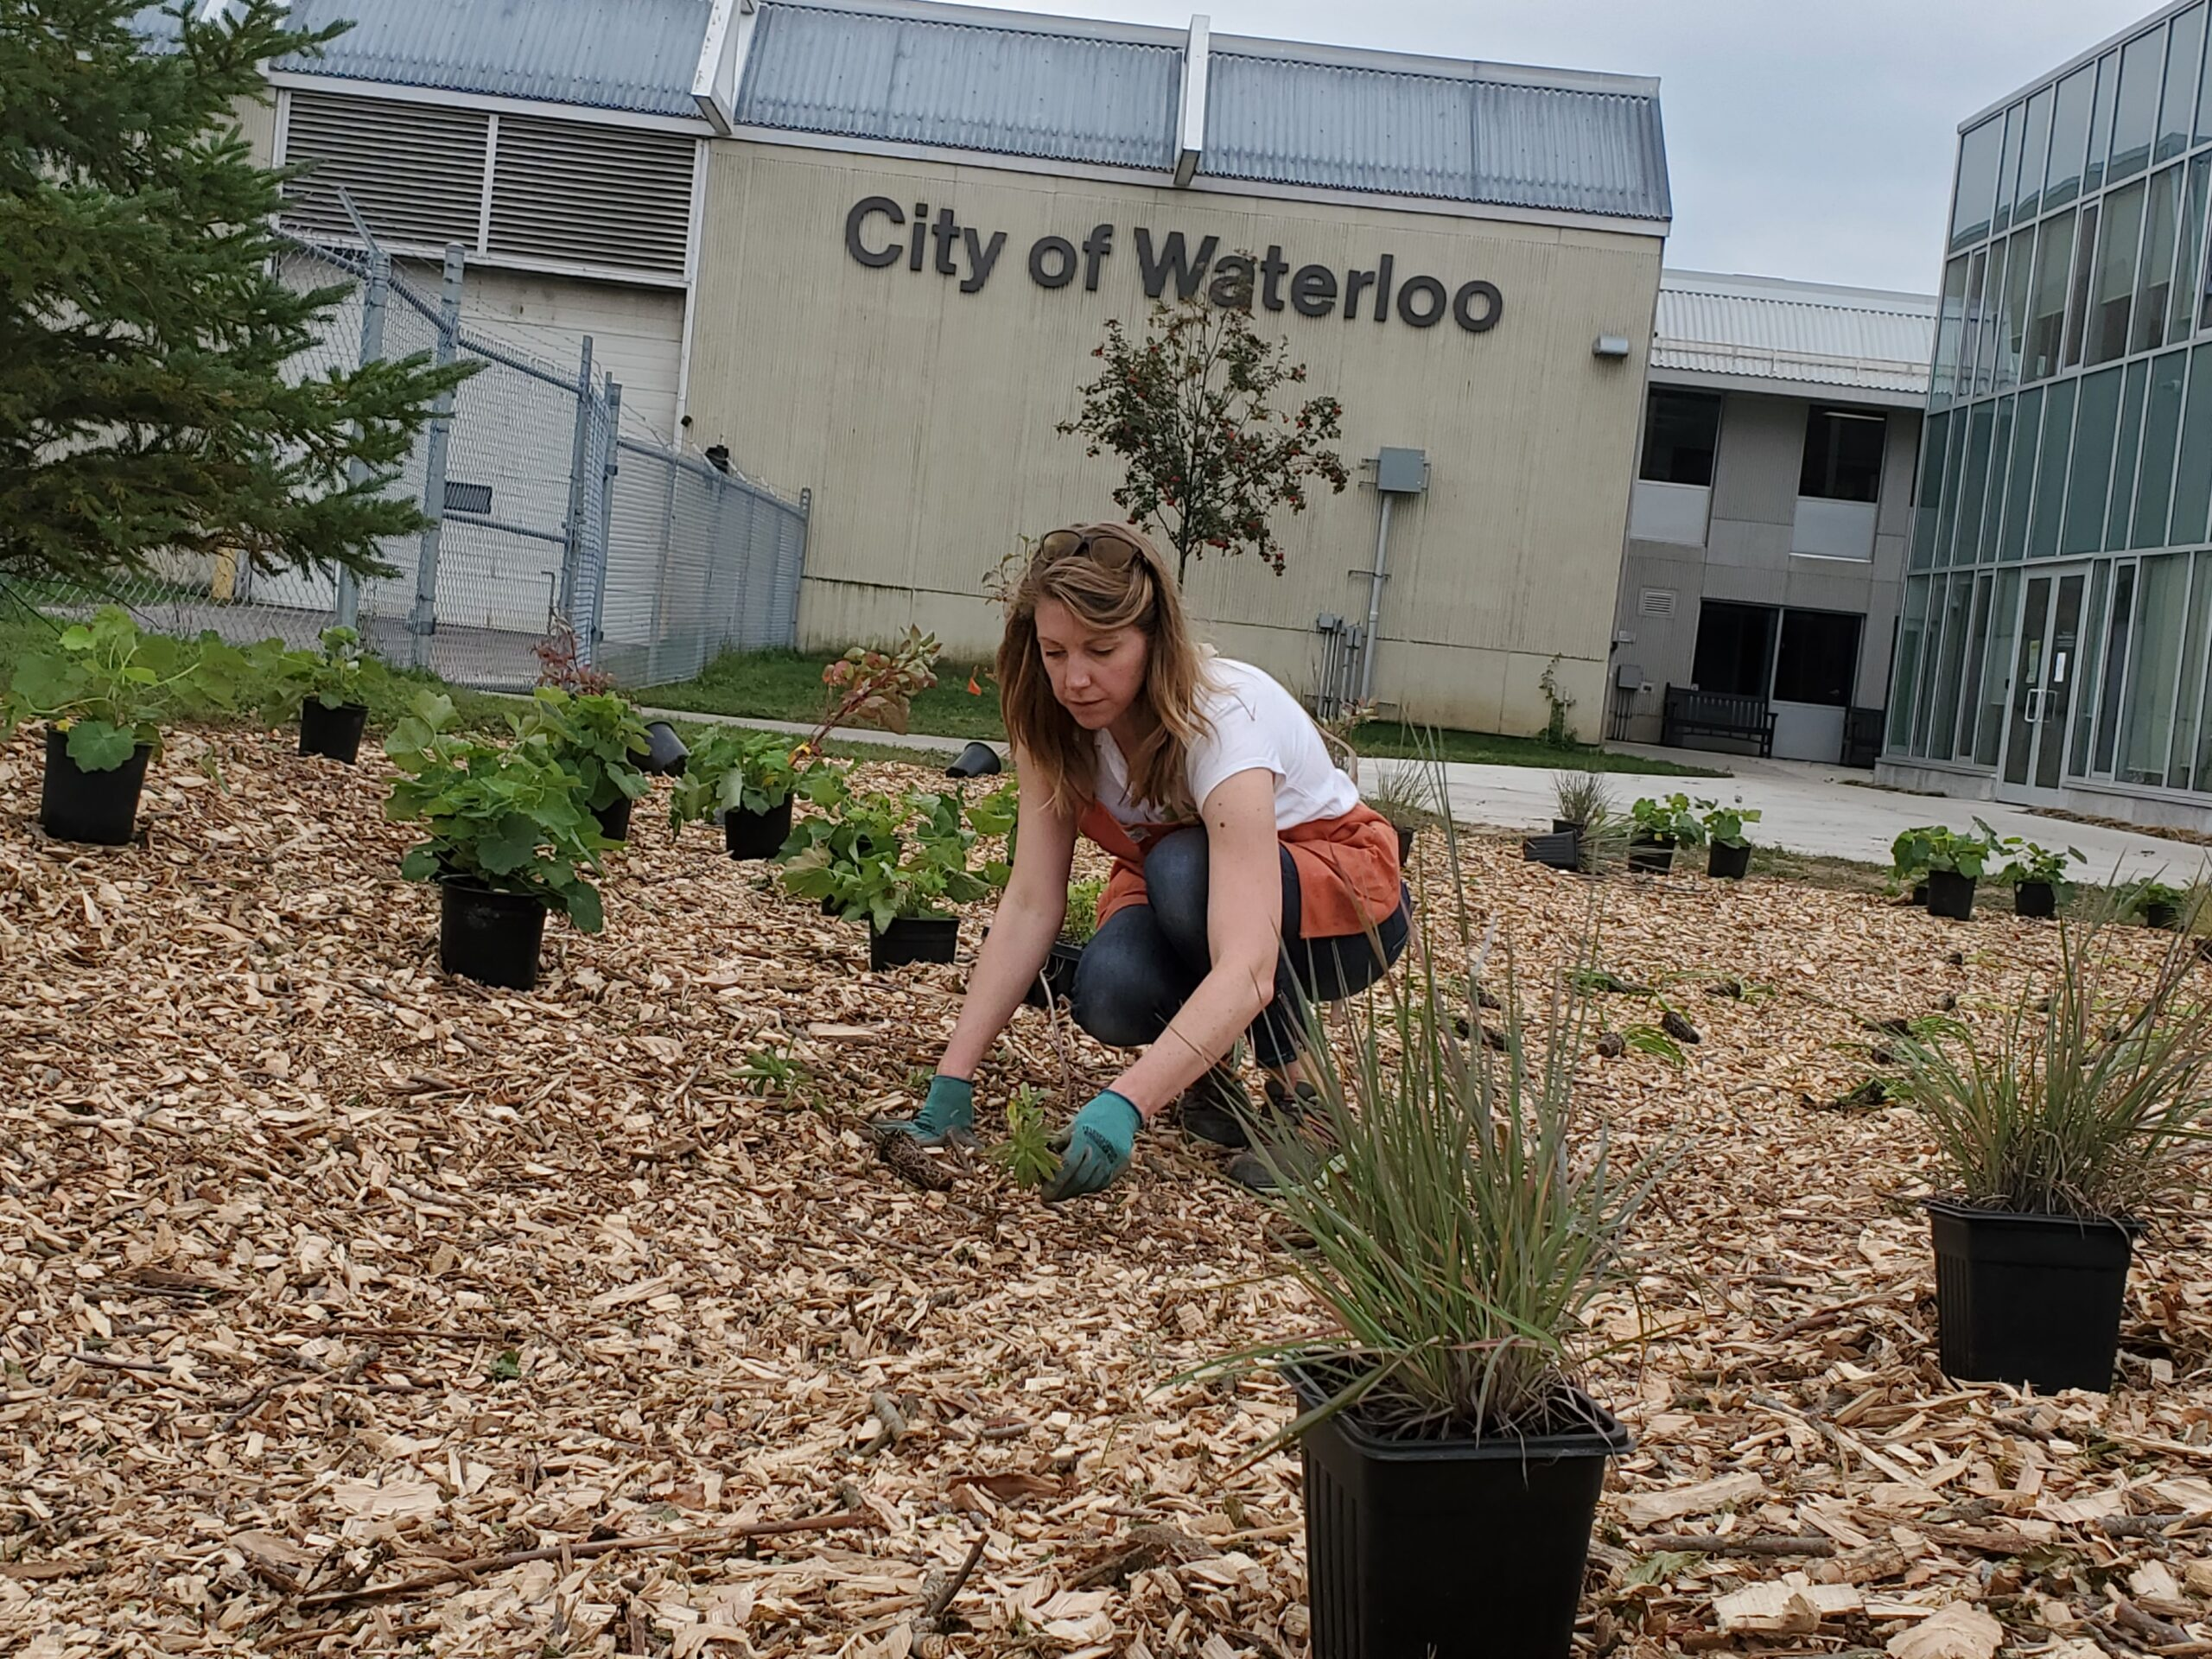 Becca, rain garden coach planting during a work party at the waterloo service centre